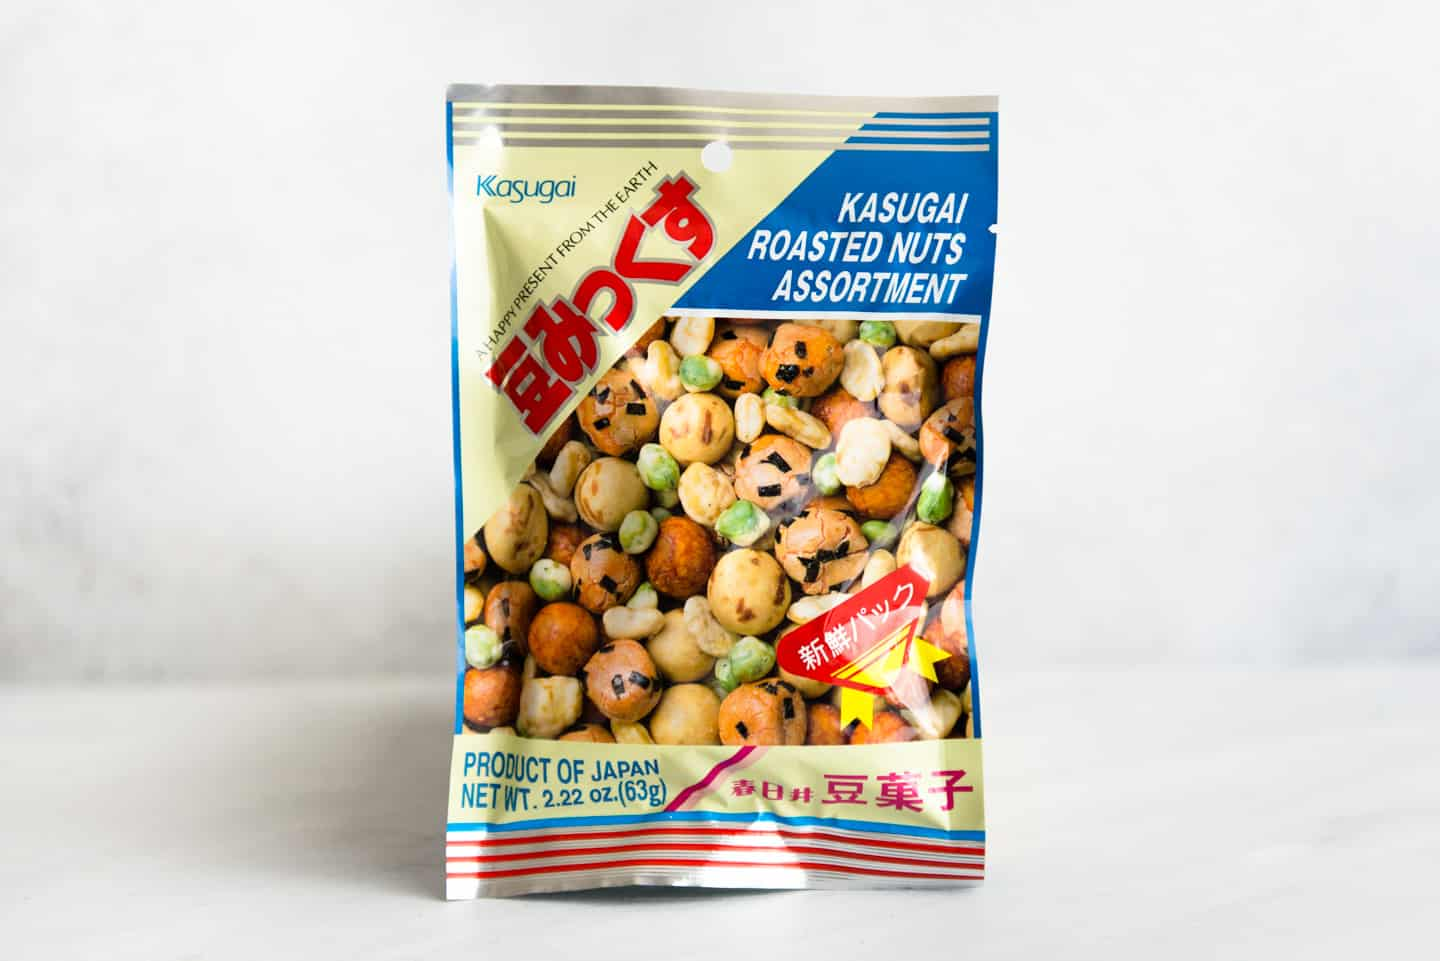 Kasugai Roasted Nuts